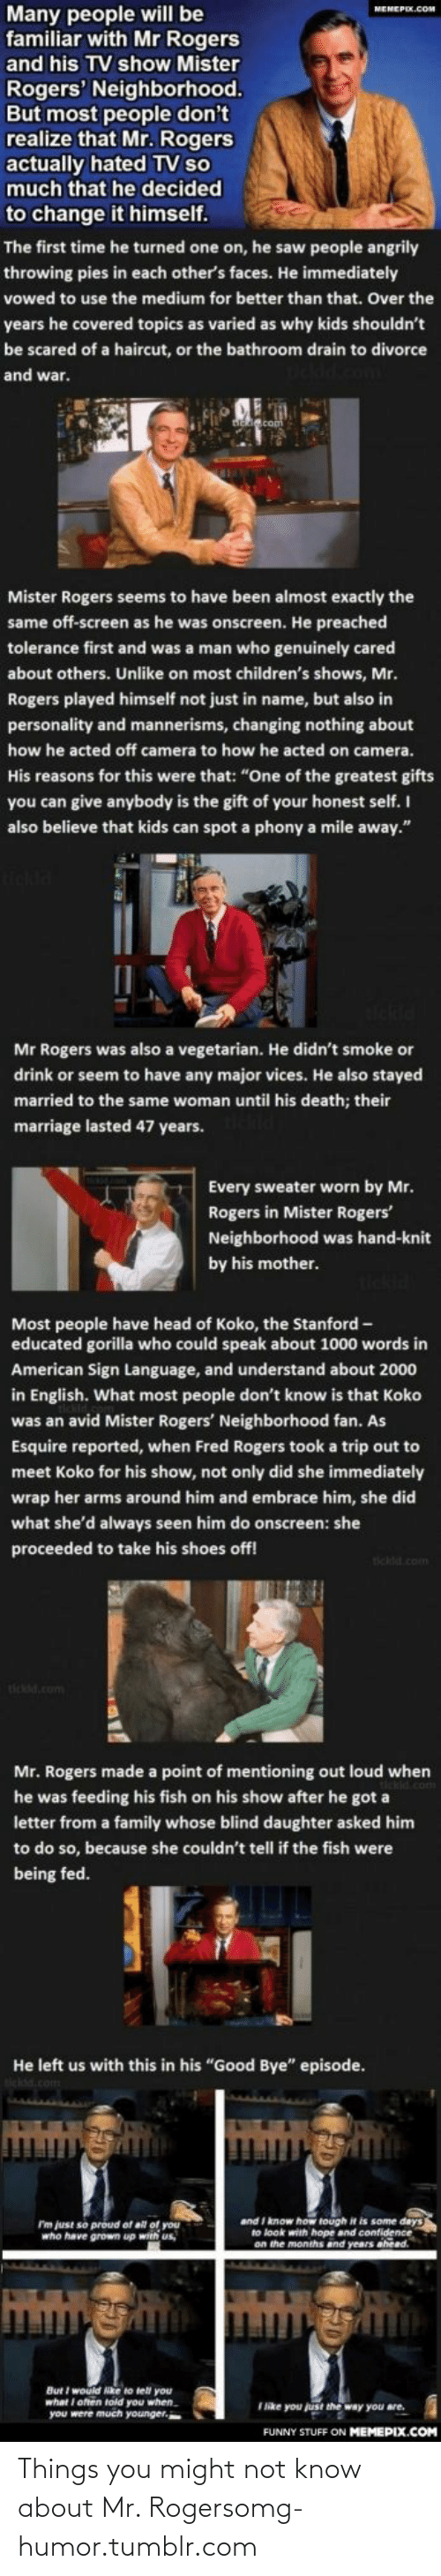 """fred rogers: Many people will be  familiar with Mr Rogers  MEMEPEX.COM  and his TV show Mister  Rogers' Neighborhood.  But most people don't  realize that Mr. Rogers  actually hated TV so  much that he decided  to change it himself.  The first time he turned one on, he saw people angrily  throwing pies in each other's faces. He immediately  vowed to use the medium for better than that. Over the  years he covered topics as varied as why kids shouldn't  be scared of a haircut, or the bathroom drain to divorce  and war.  Mister Rogers seems to have been almost exactly the  same off-screen as he was onscreen. He preached  tolerance first and was a man who genuinely cared  about others. Unlike on most children's shows, Mr.  Rogers played himself not just in name, but also in  personality and mannerisms, changing nothing about  how he acted off camera to how he acted on camera.  His reasons for this were that: """"One of the greatest gifts  you can give anybody is the gift of your honest self. I  also believe that kids can spot a phony a mile away.""""  Mr Rogers was also a vegetarian. He didn't smoke or  drink or seem to have any major vices. He also stayed  married to the same woman until his death; their  marriage lasted 47 years.  Every sweater worn by Mr.  Rogers in Mister Rogers'  Neighborhood was hand-knit  by his mother.  Most people have head of Koko, the Stanford -  educated gorilla who could speak about 1000 words in  American Sign Language, and understand about 2000  in English. What most people don't know is that Koko  was an avid Mister Rogers' Neighborhood fan. As  Esquire reported, when Fred Rogers took a trip out to  meet Koko for his show, not only did she immediately  wrap her arms around him and embrace him, she did  what she'd always seen him do onscreen: she  proceeded to take his shoes off!  tickld.com  tickd.com  Mr. Rogers made a point of mentioning out loud when  he was feeding his fish on his show after he got a  letter from a family whose blind daugh"""